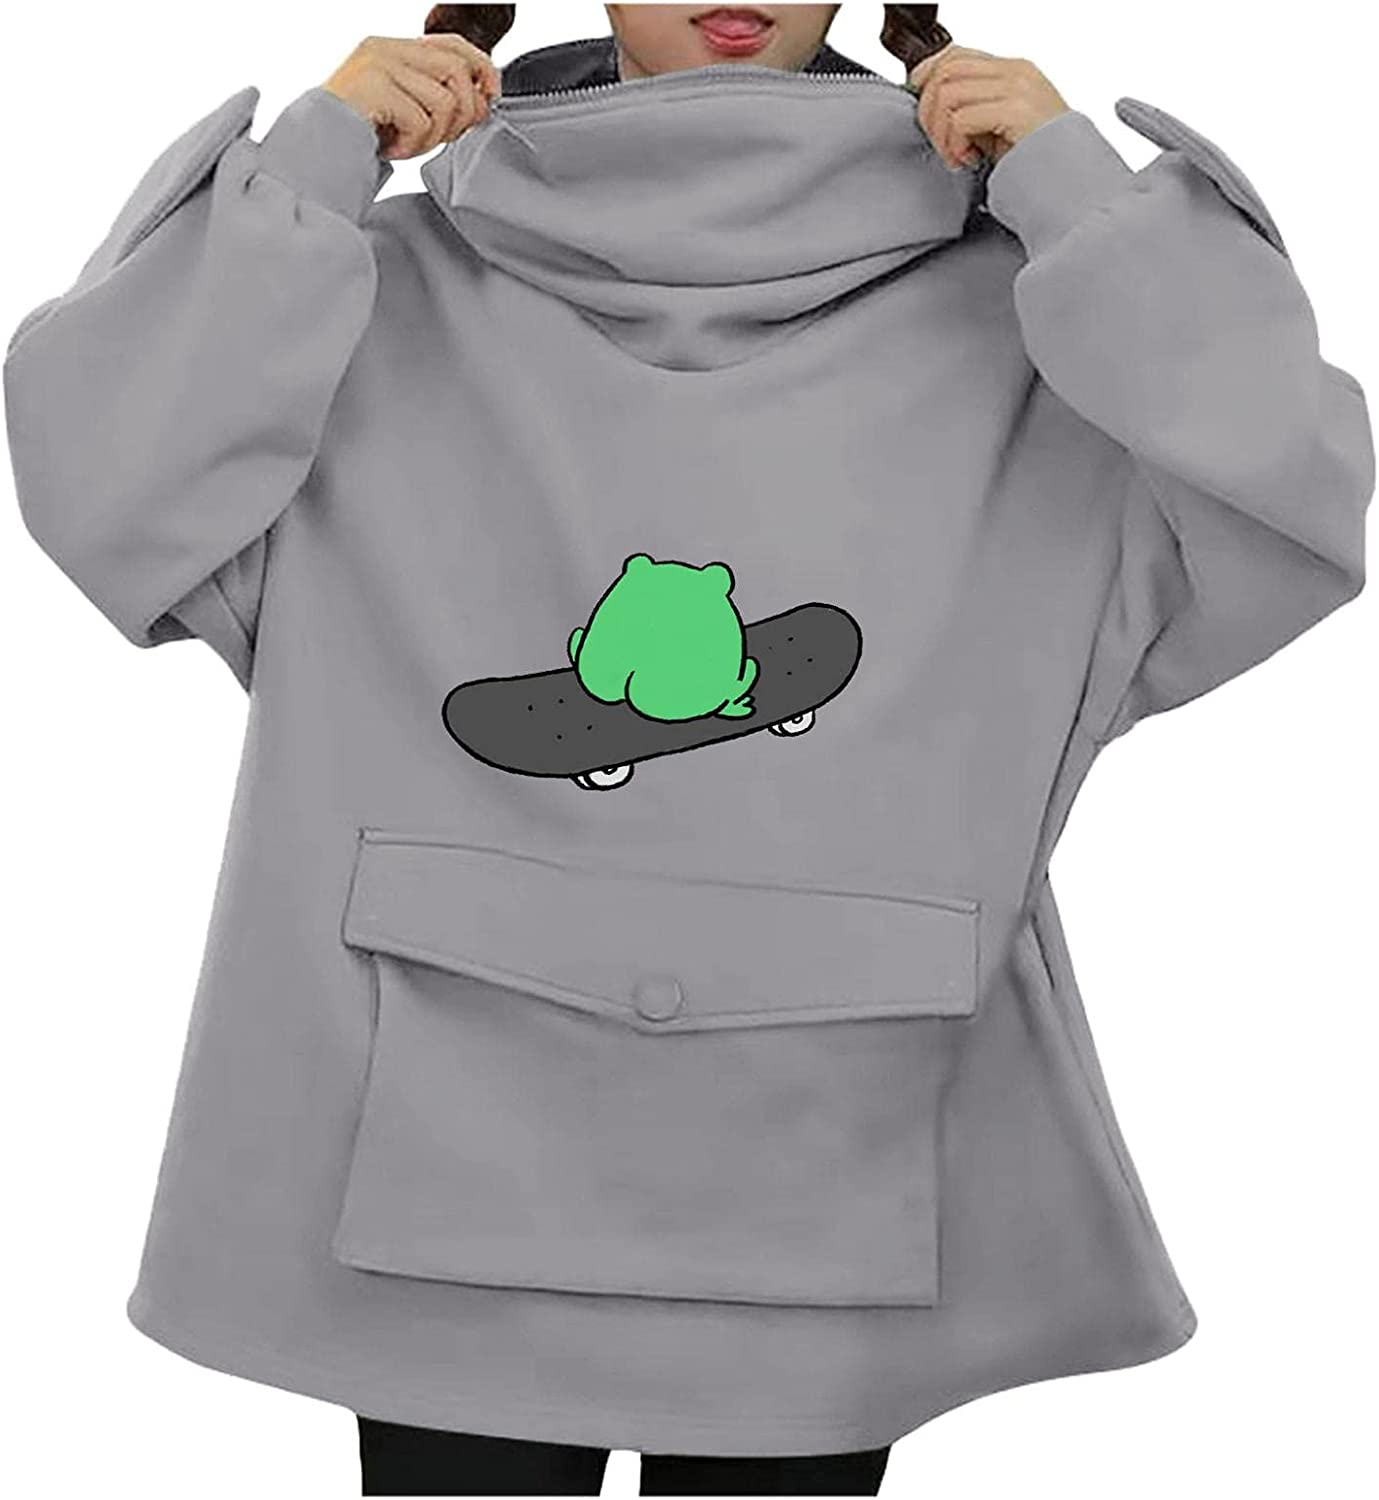 Hotkey Hoodies for Women, Women's Autumn Cute Frog Hooded Zipper Sweatshirt with Large Front Pocket Long Sleeve Pullover